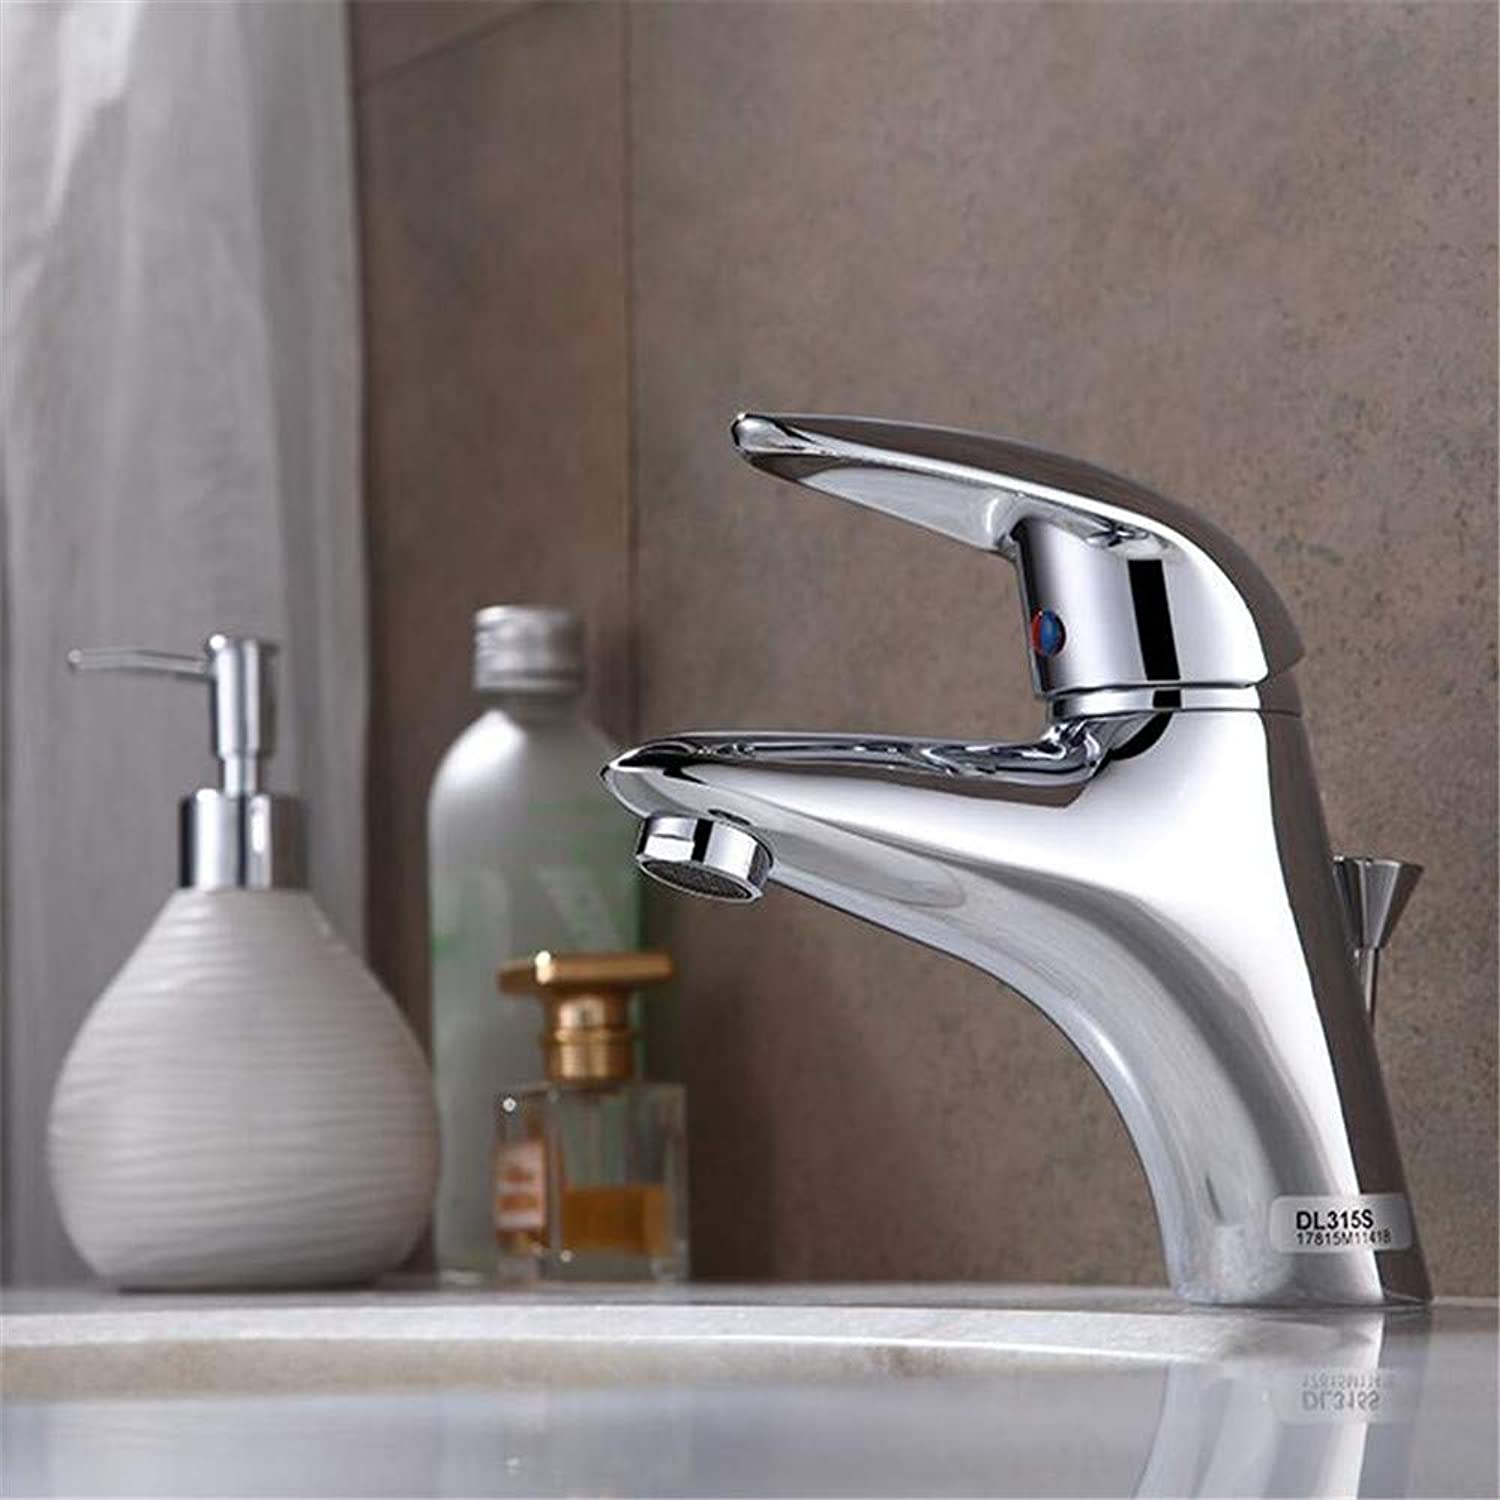 Bath Faucet Bathroom Hot and Cold Water Basin Basin Single Hole Single Handle Wash Basin Basin Mixer